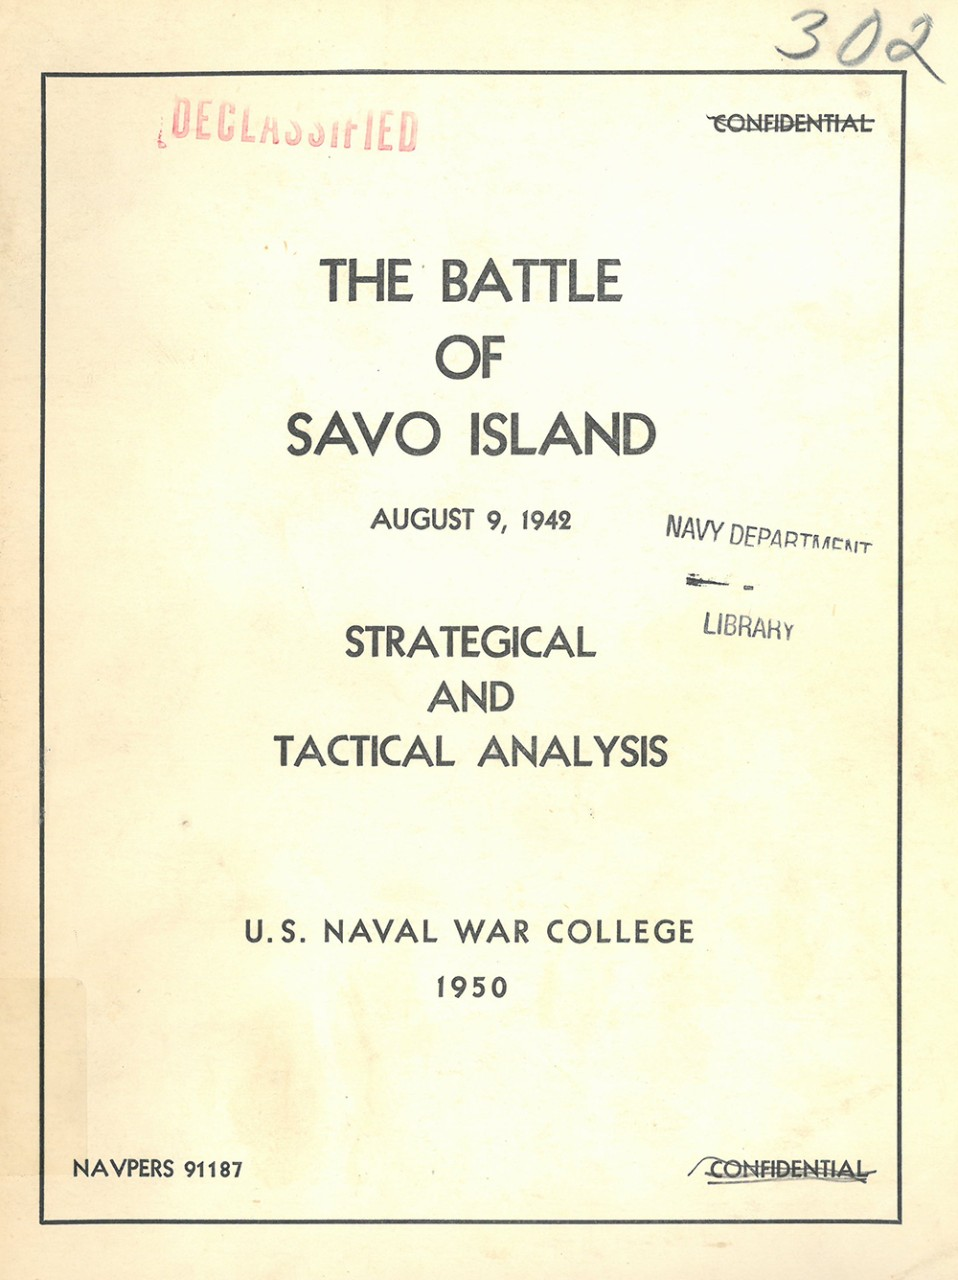 Cover image - The Battle of Savo Island August 9, 1942 Strategical and Tactical Analysis